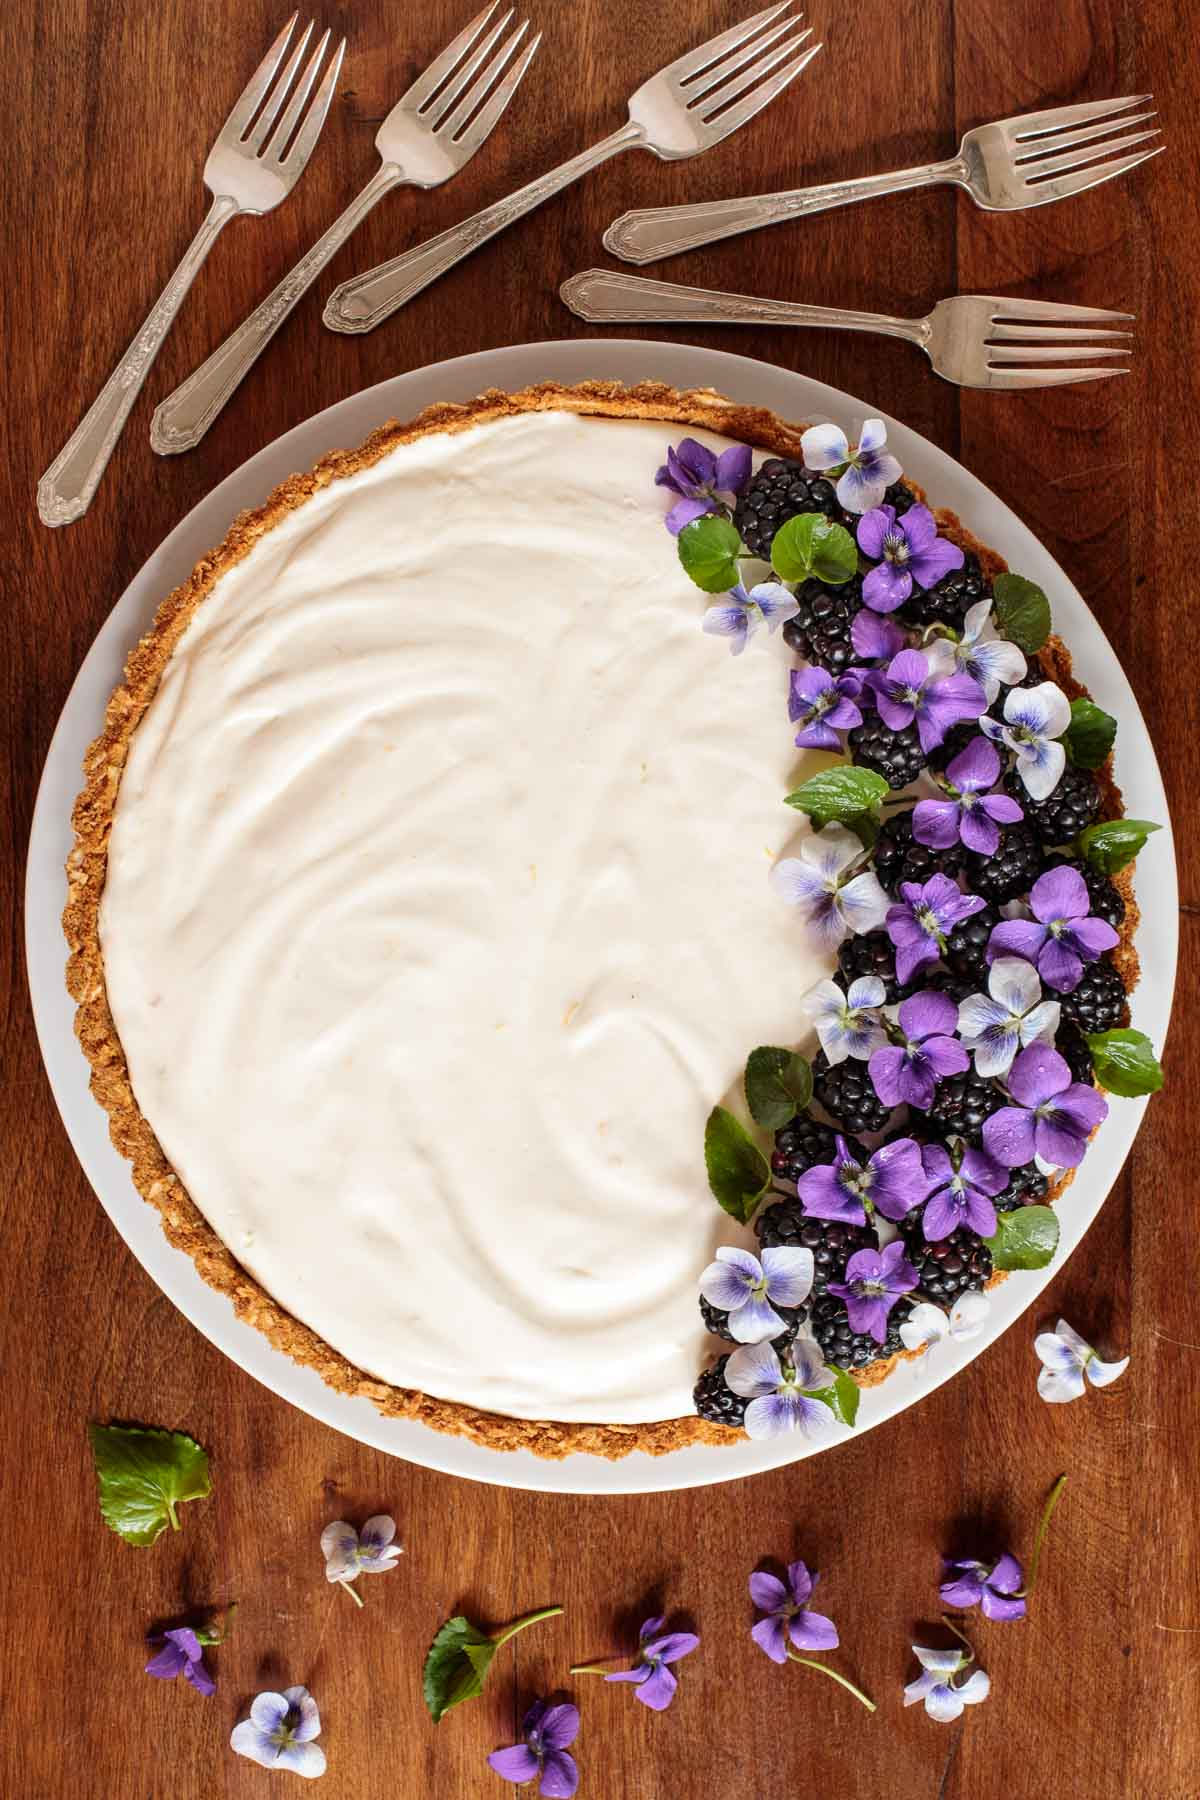 Overhead picture of limoncello lemon tart garnished with purple flowers